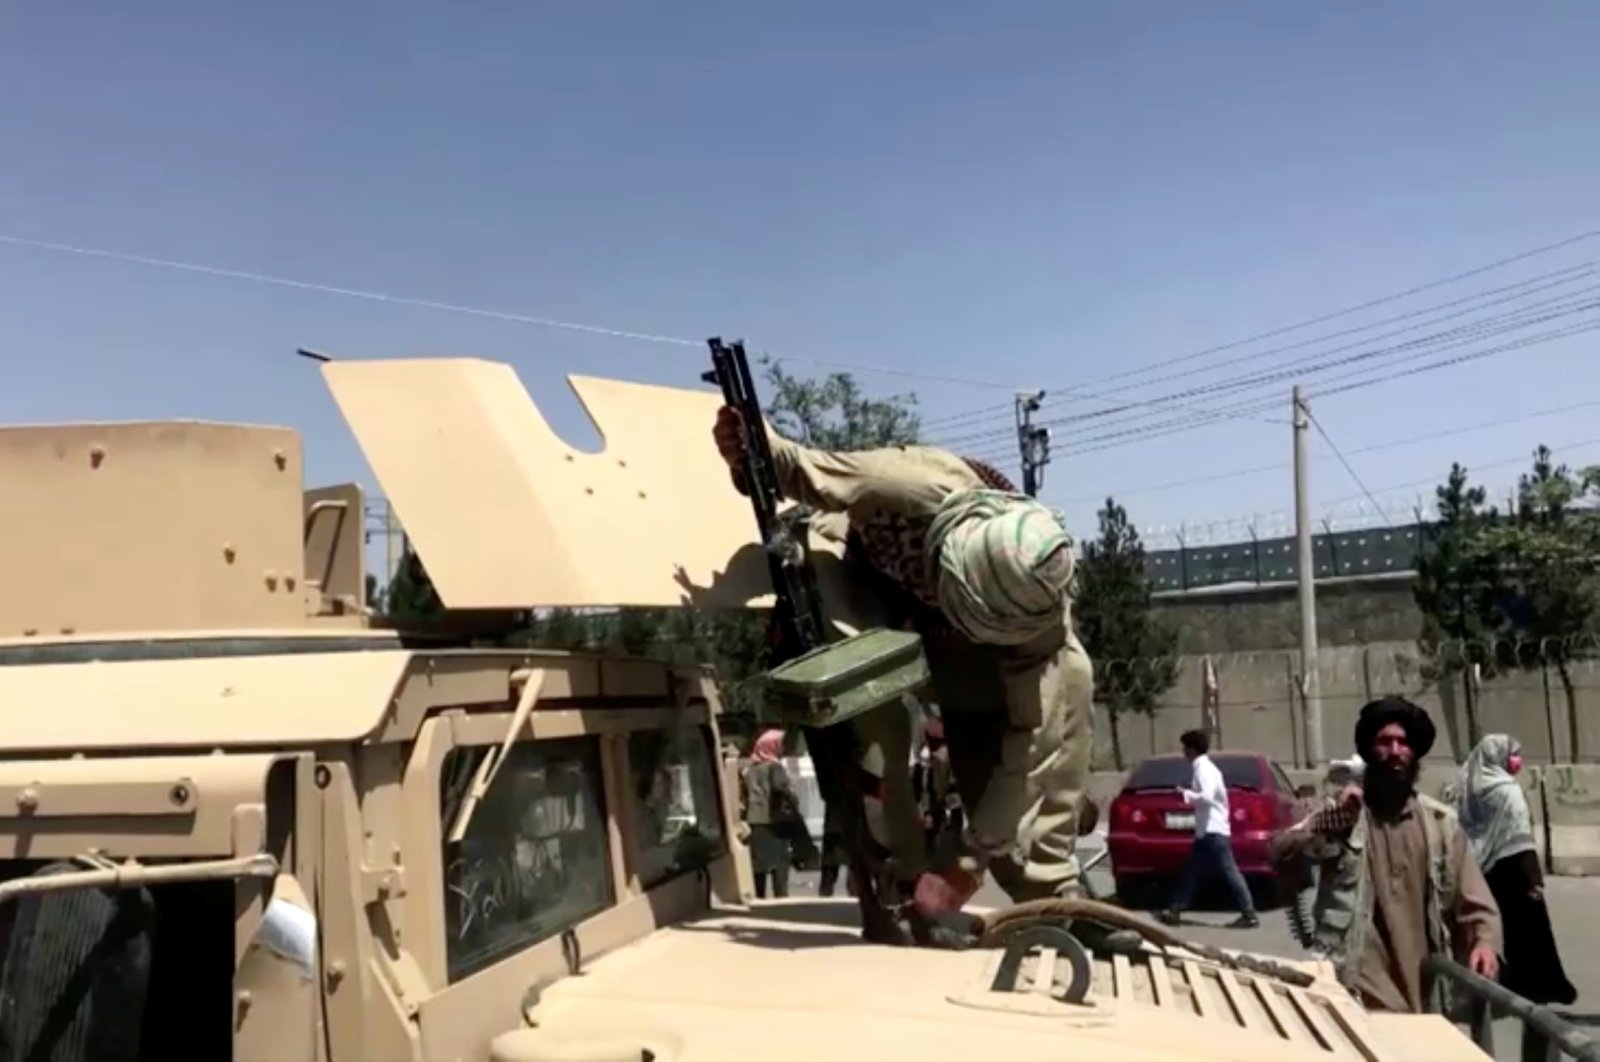 A Taliban fighter on top of an armoured vehicle loads a gun outside the airport in Kabul, Afghanistan Aug. 16, 2021. (Reuters File Photo)